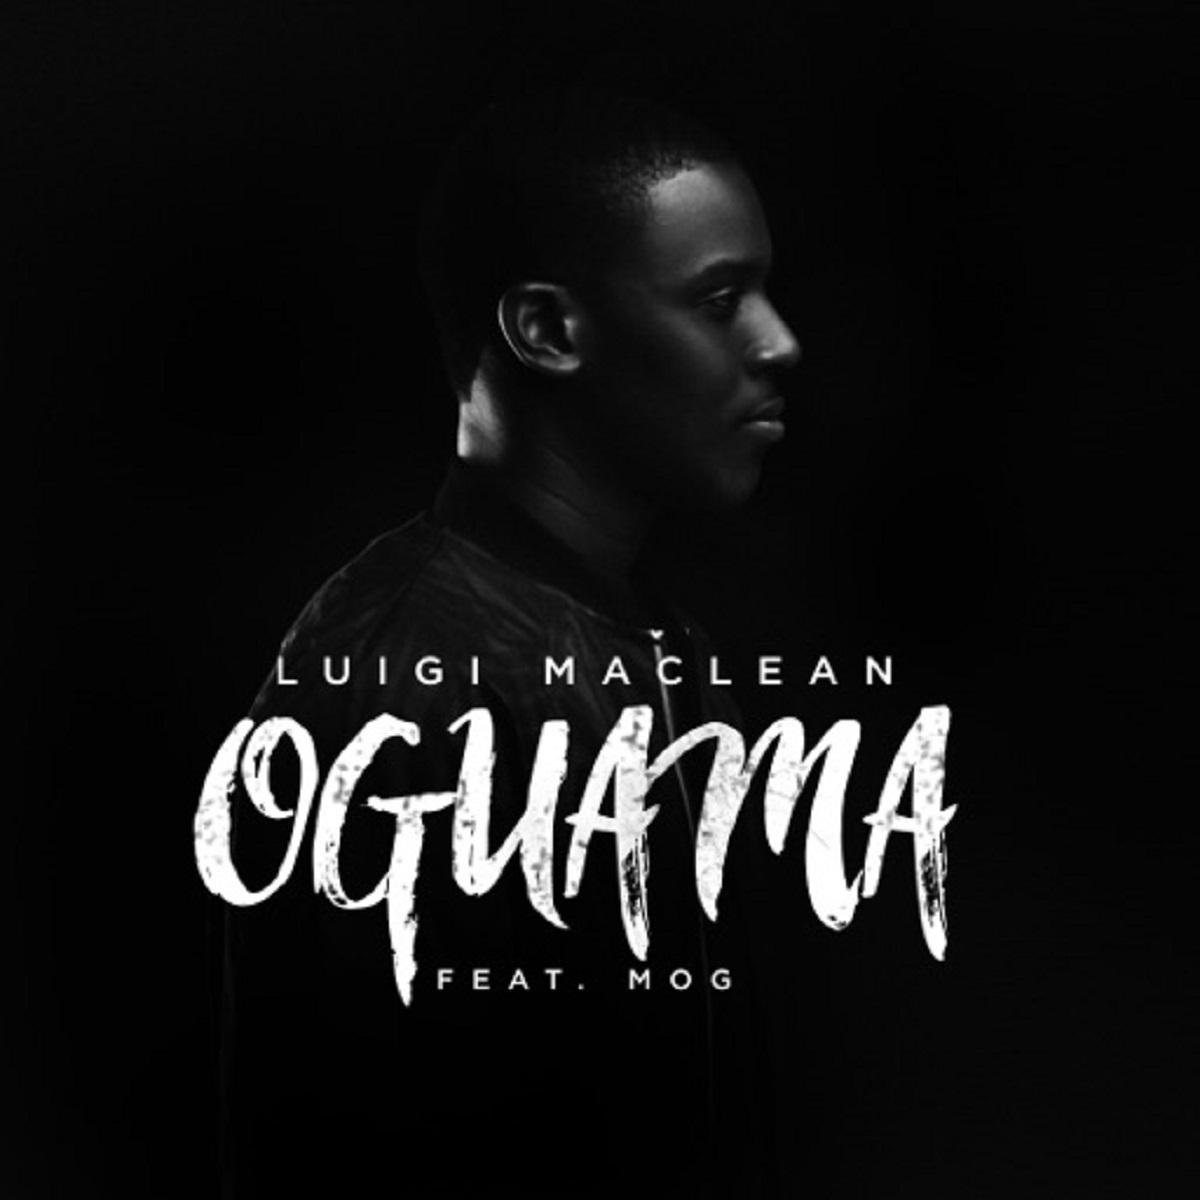 Oguama by Luigi Maclean feat. MOG Music